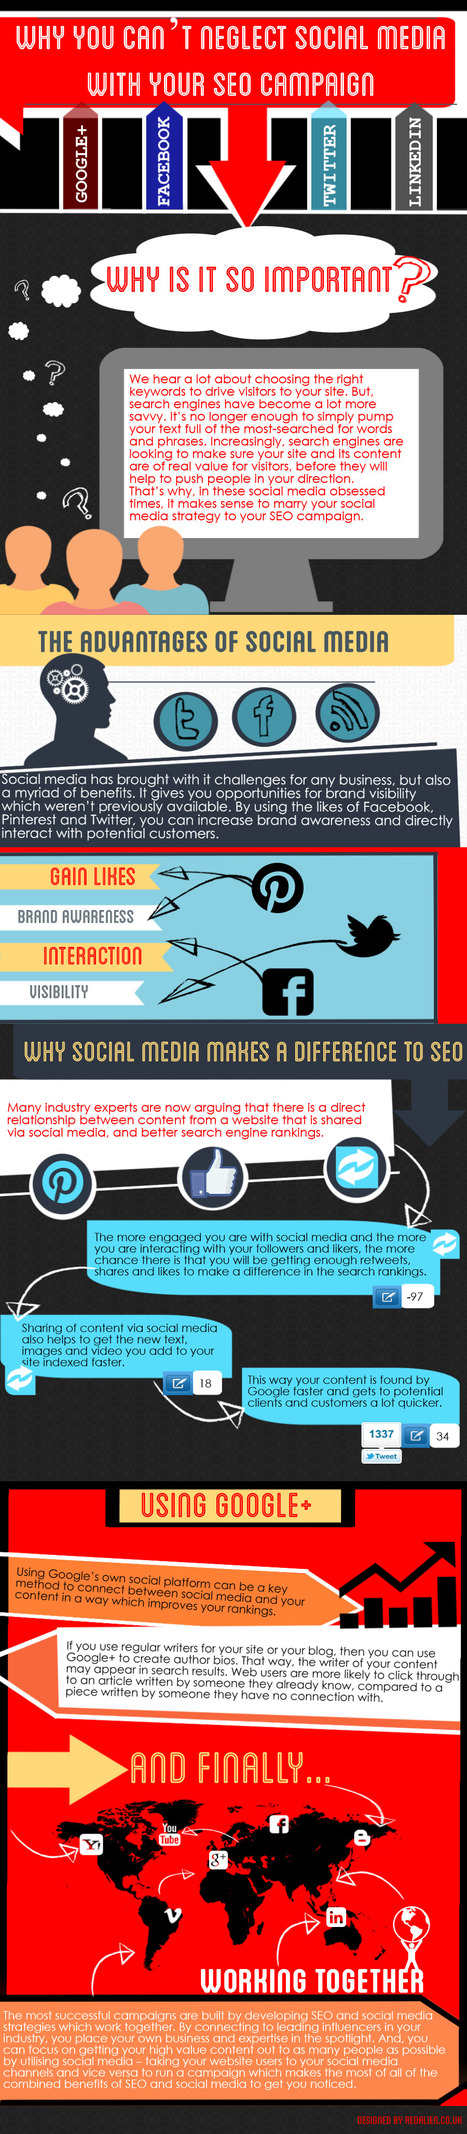 Why you can't neglect social media with SEO campaigns | WELCOME : to : PULAU SERIBU | Scoop.it